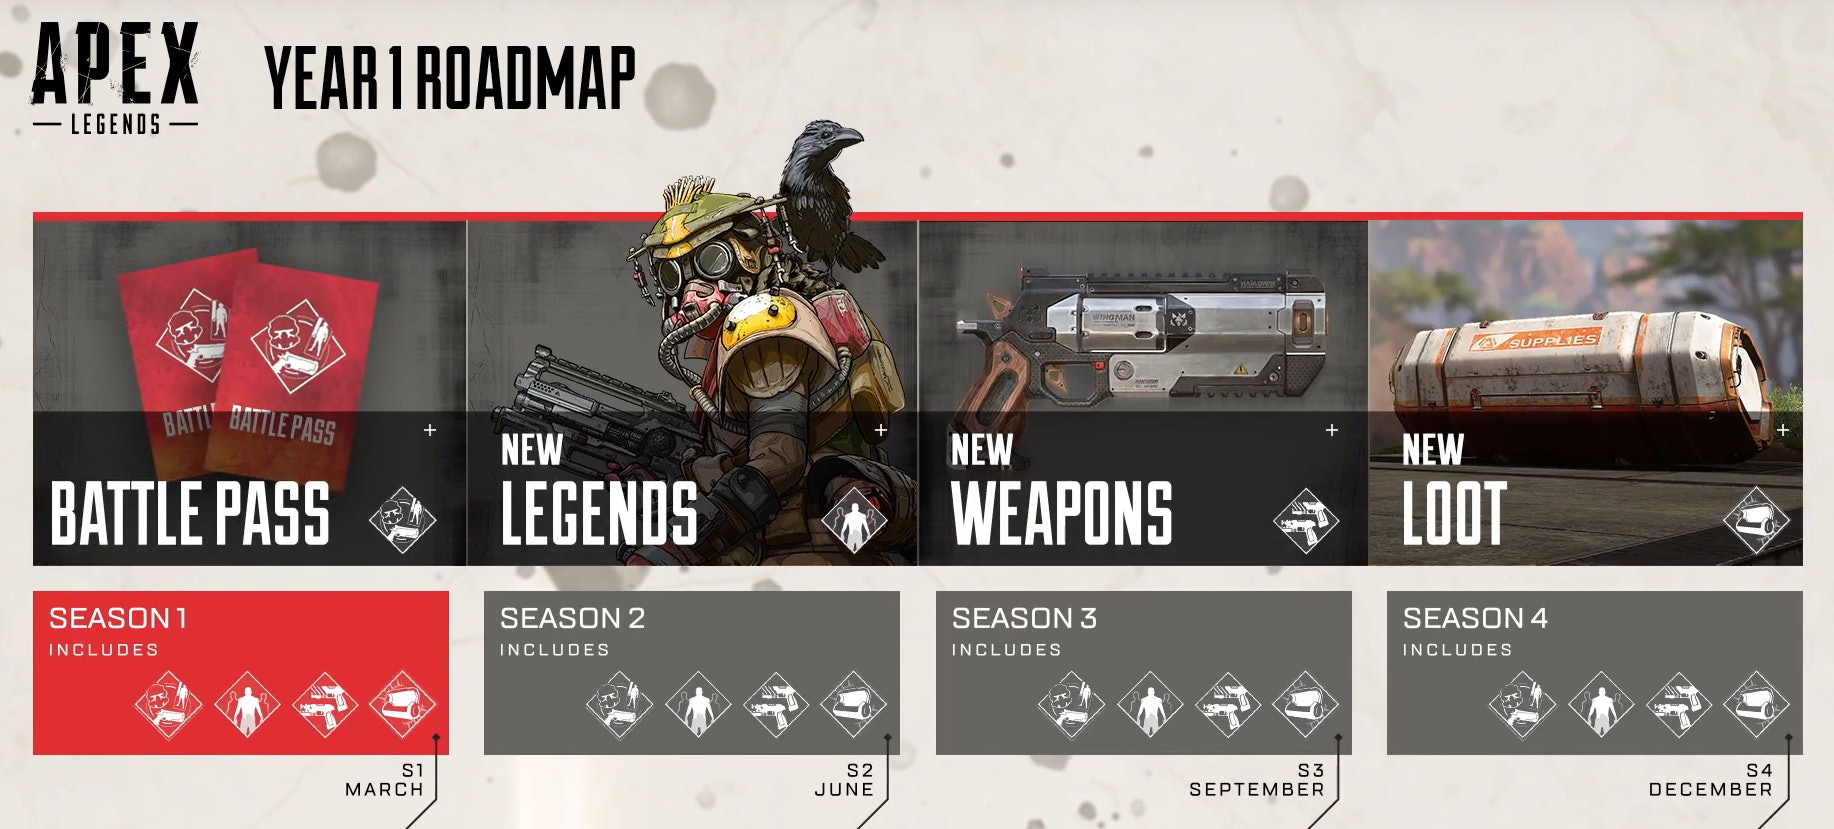 Apex Legends Year 1 Roadmap